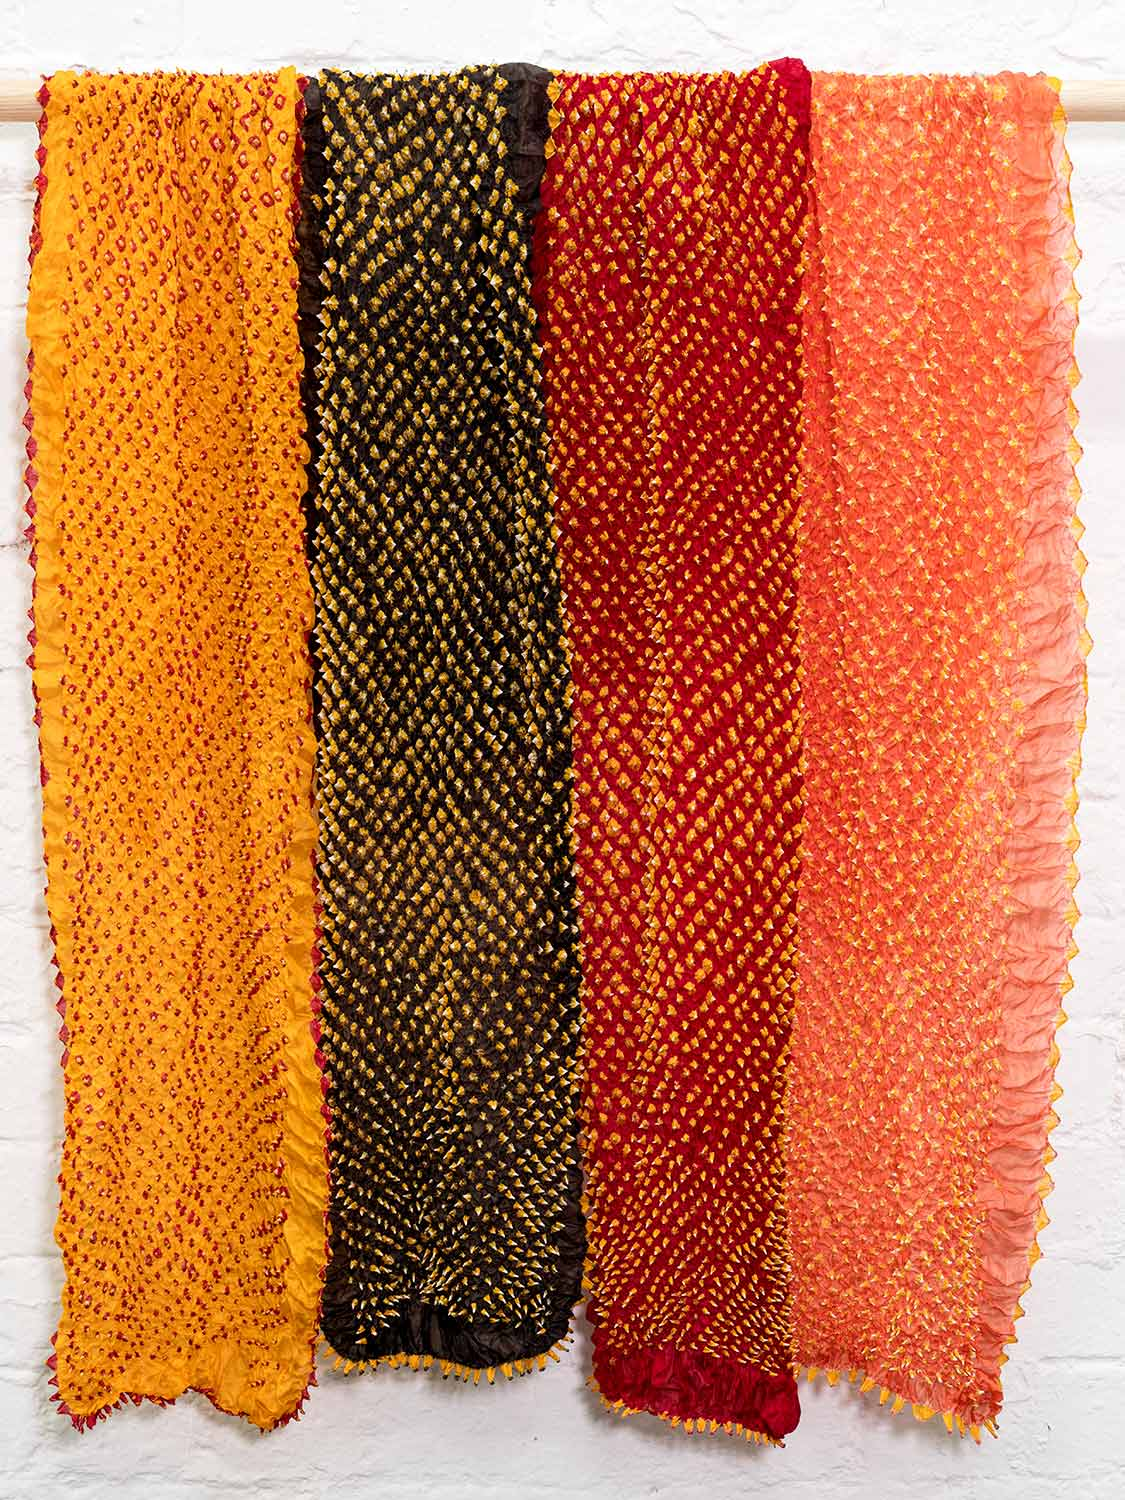 Silk Bandhani Scarves - Red Gold